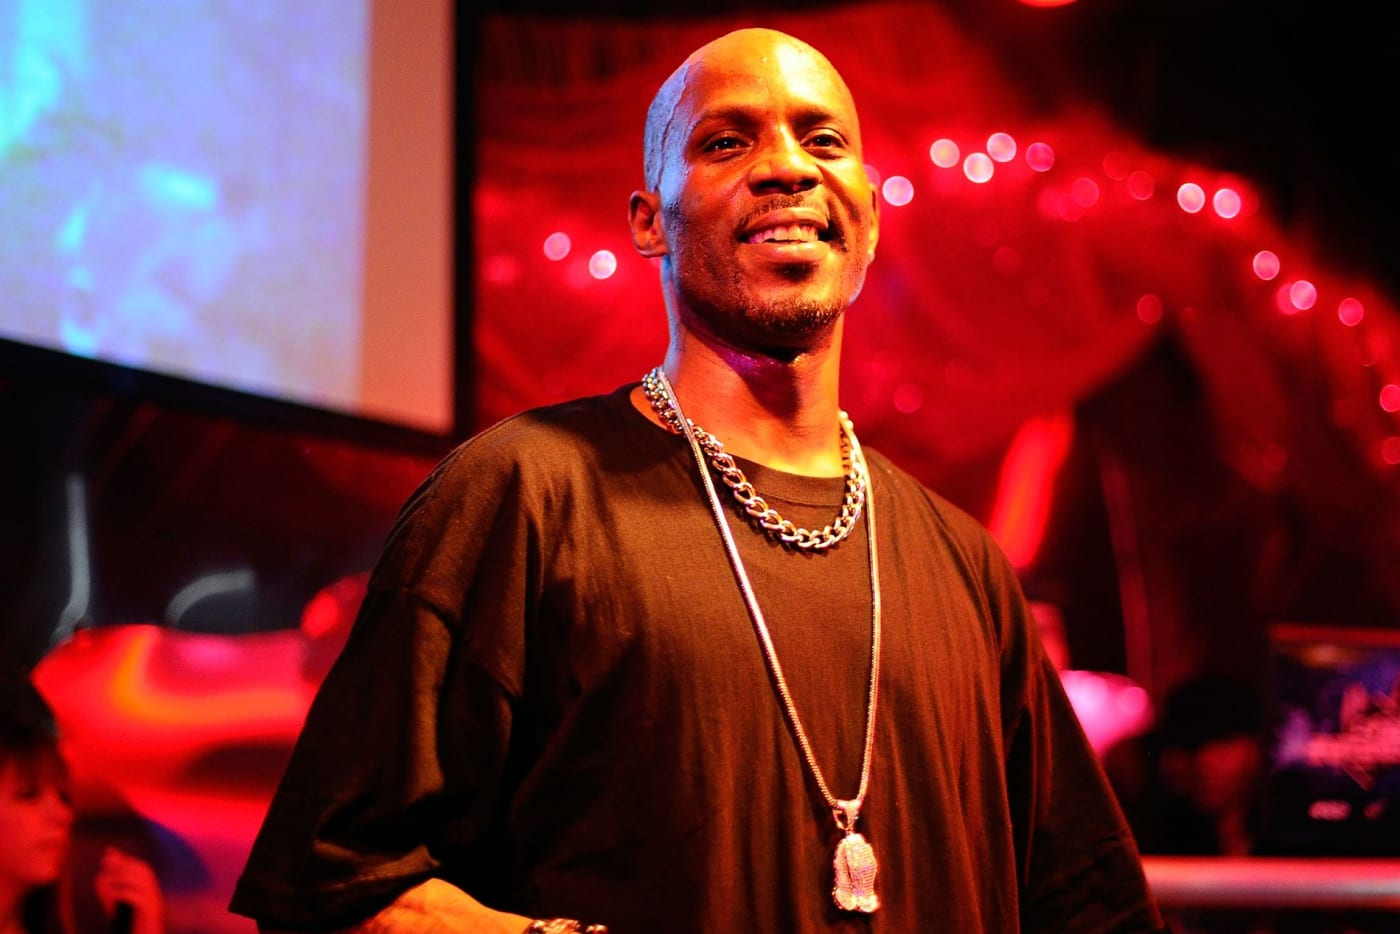 DMX on stage performing